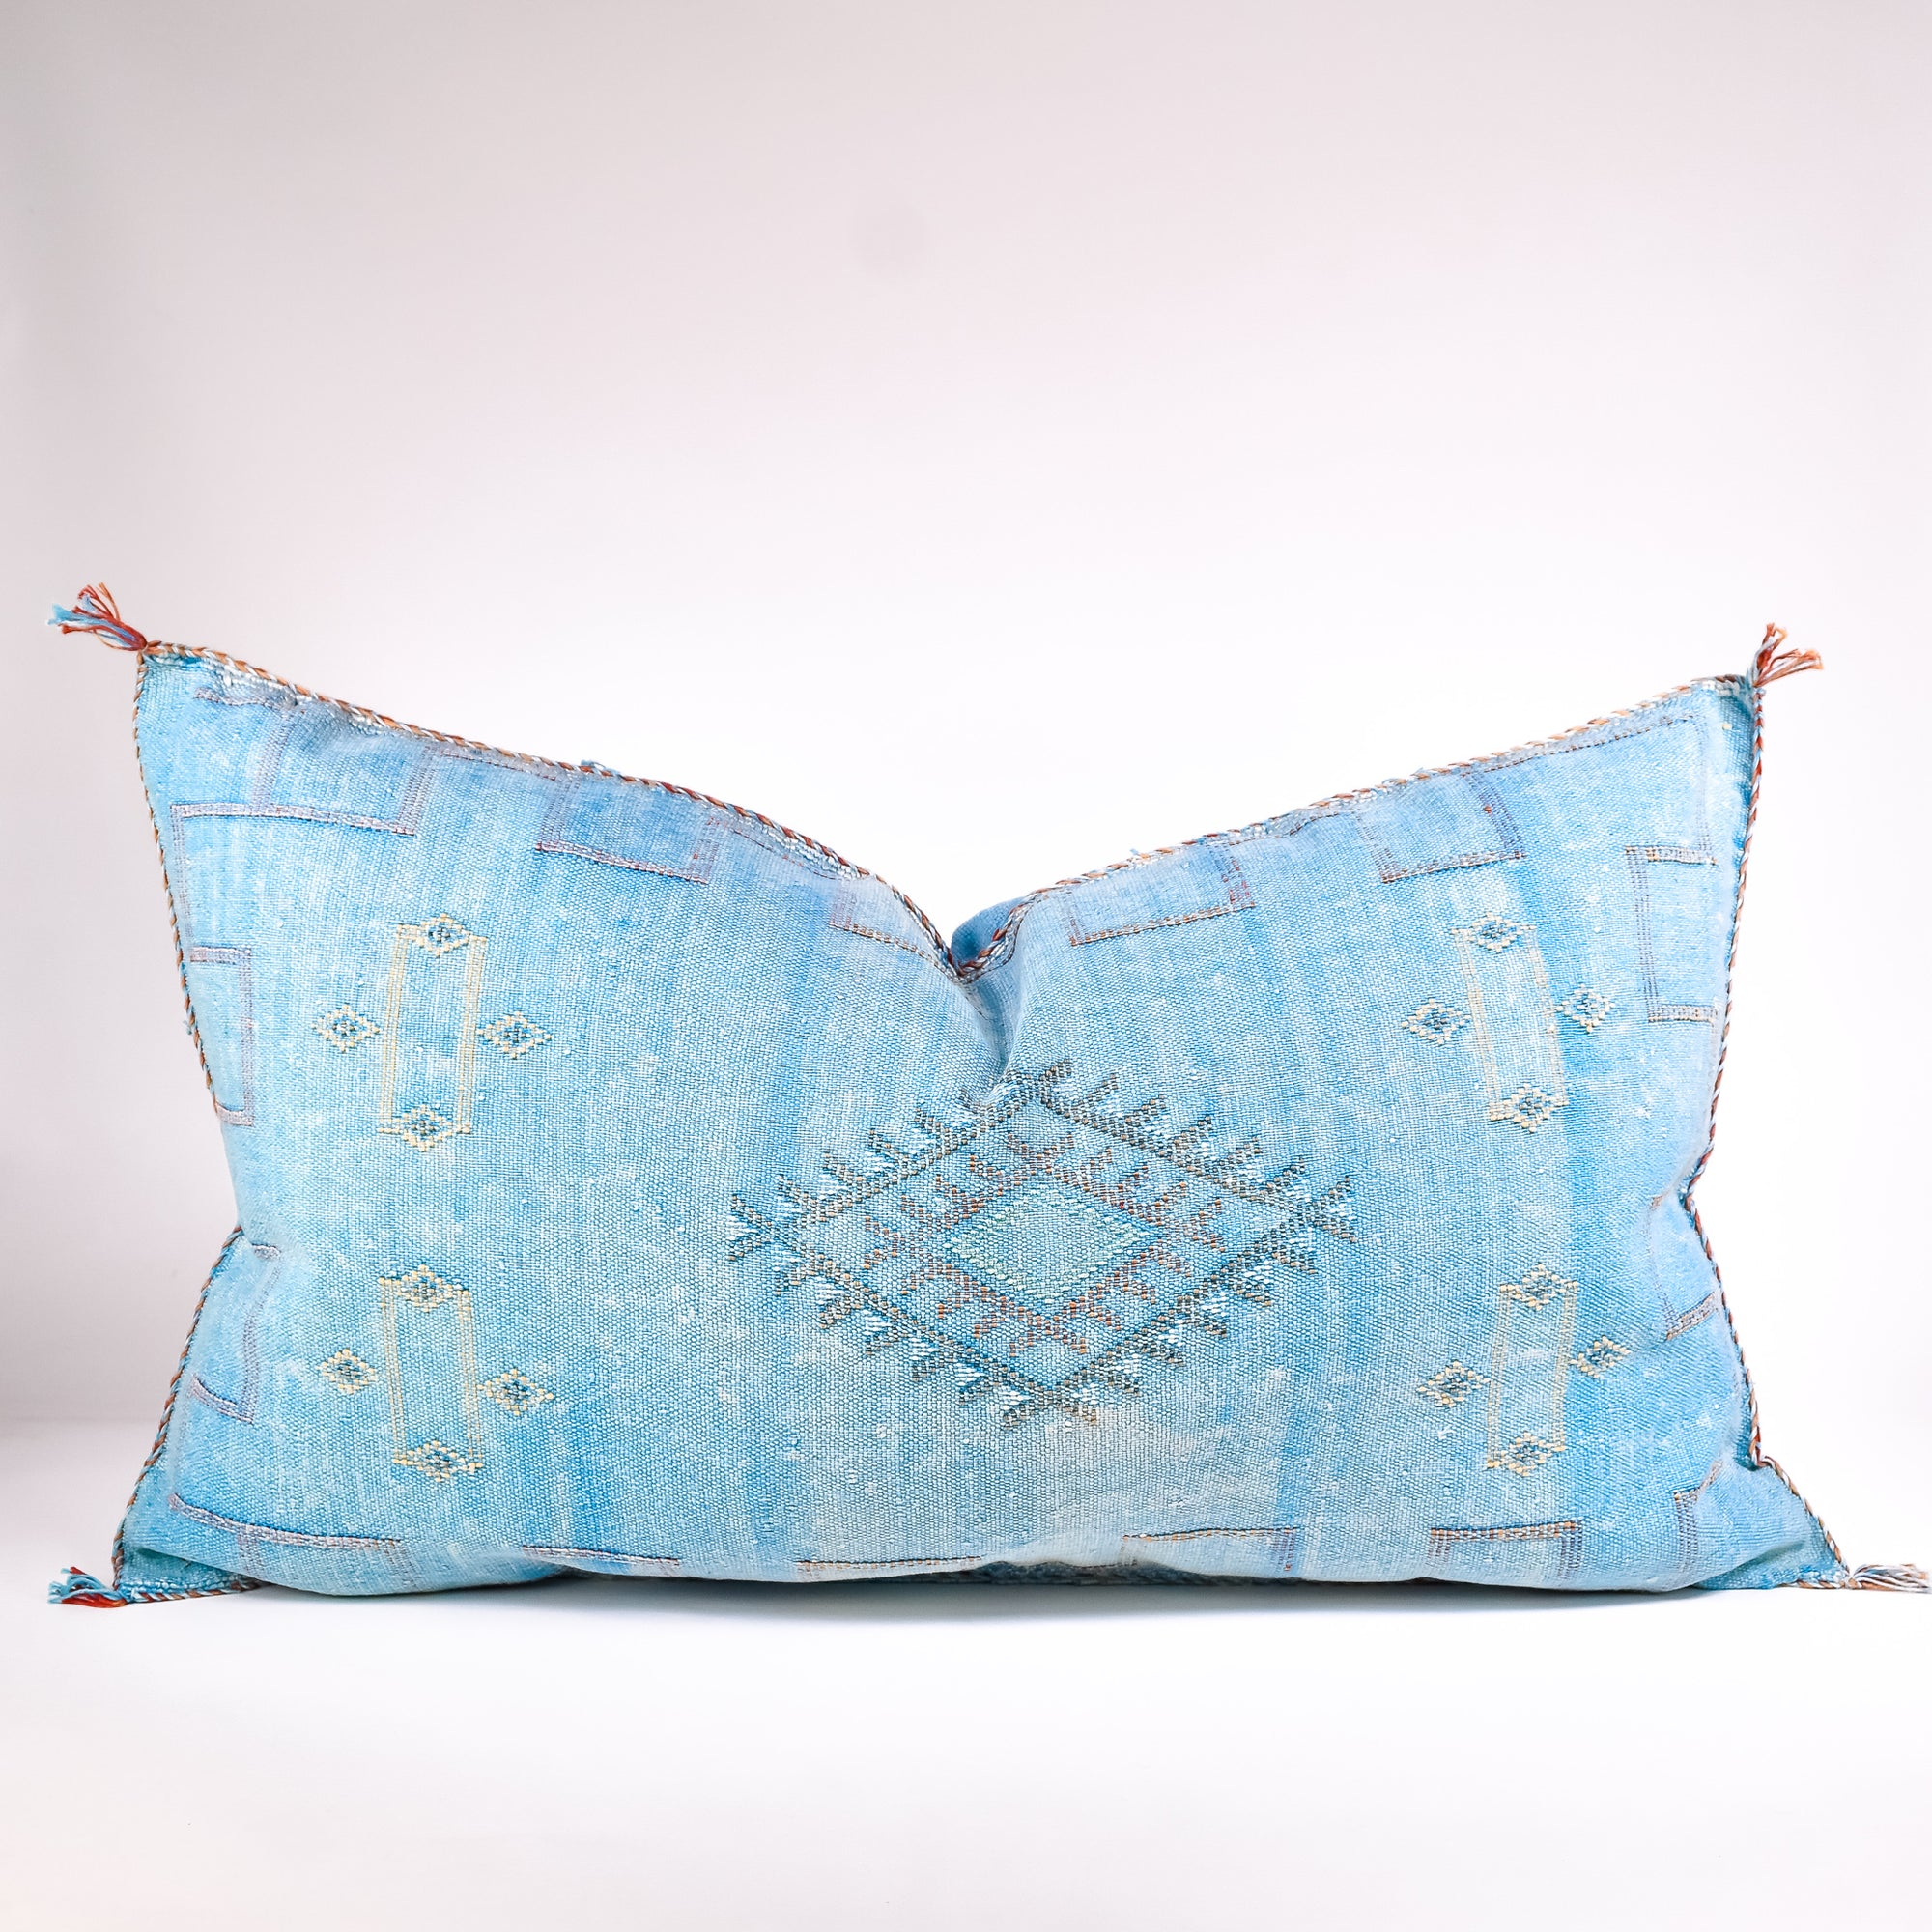 Blue Sabra Silk Pillows - Rug & Weave